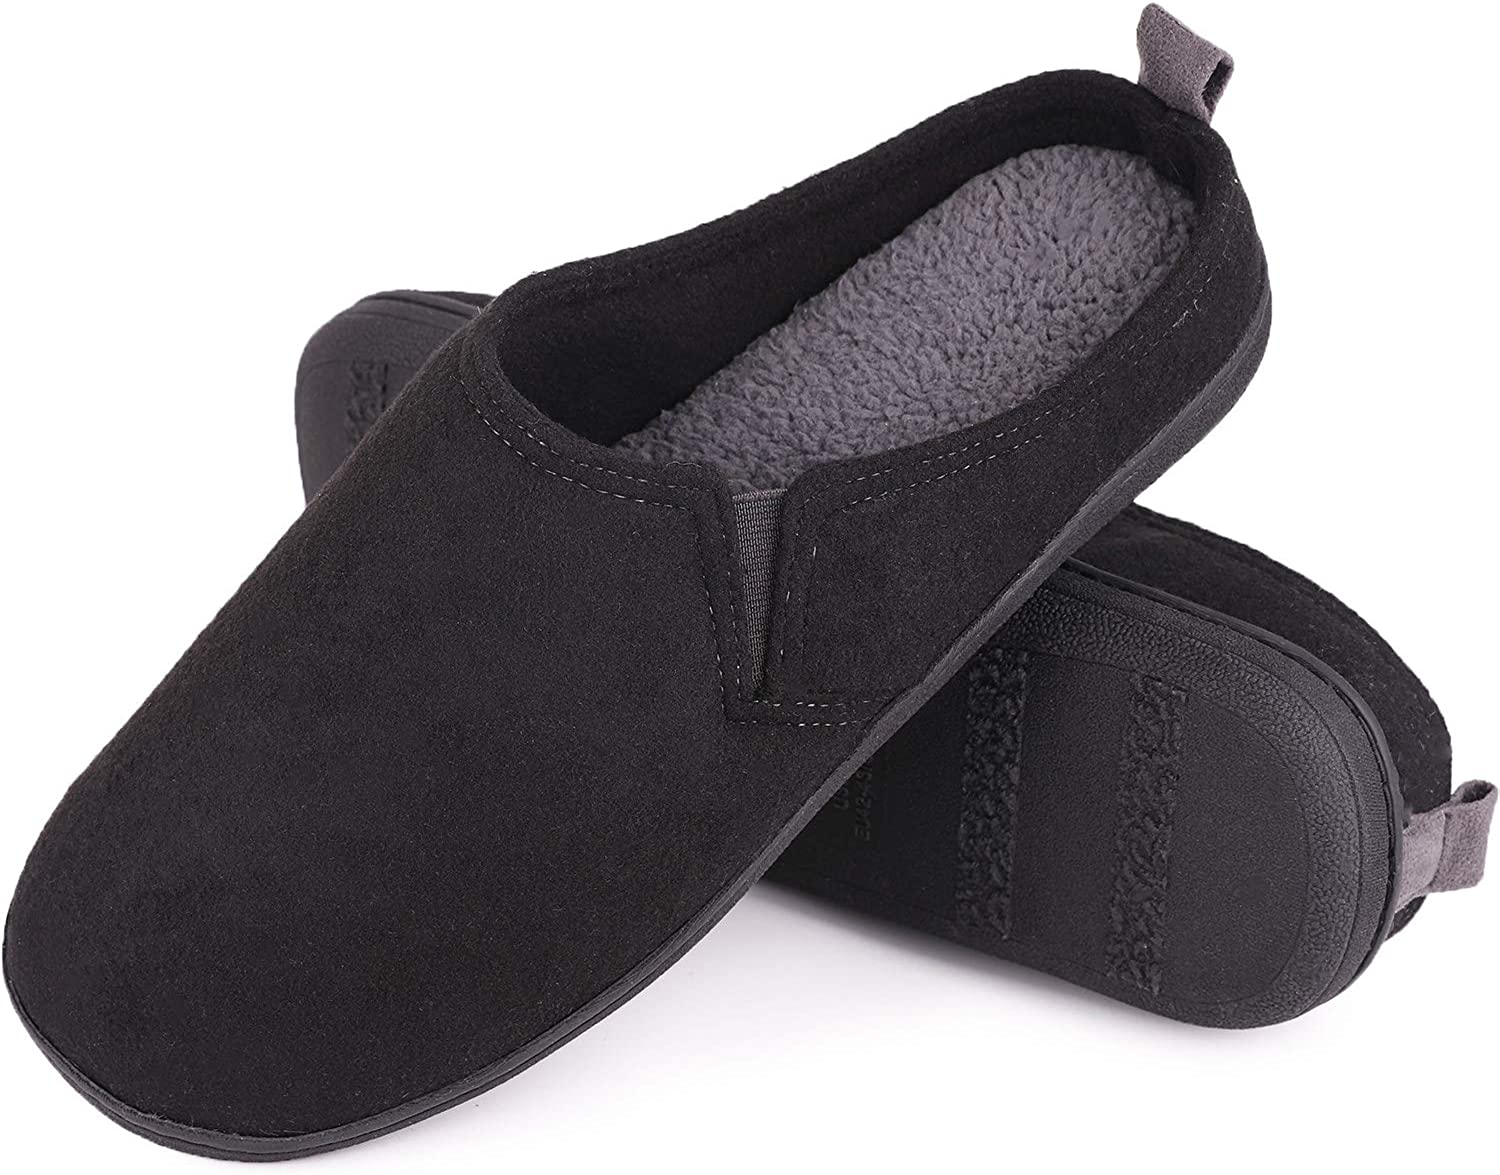 Mens Warm Plush House Slippers Memory Foam Home Slippers with Elastic Band for Indoor